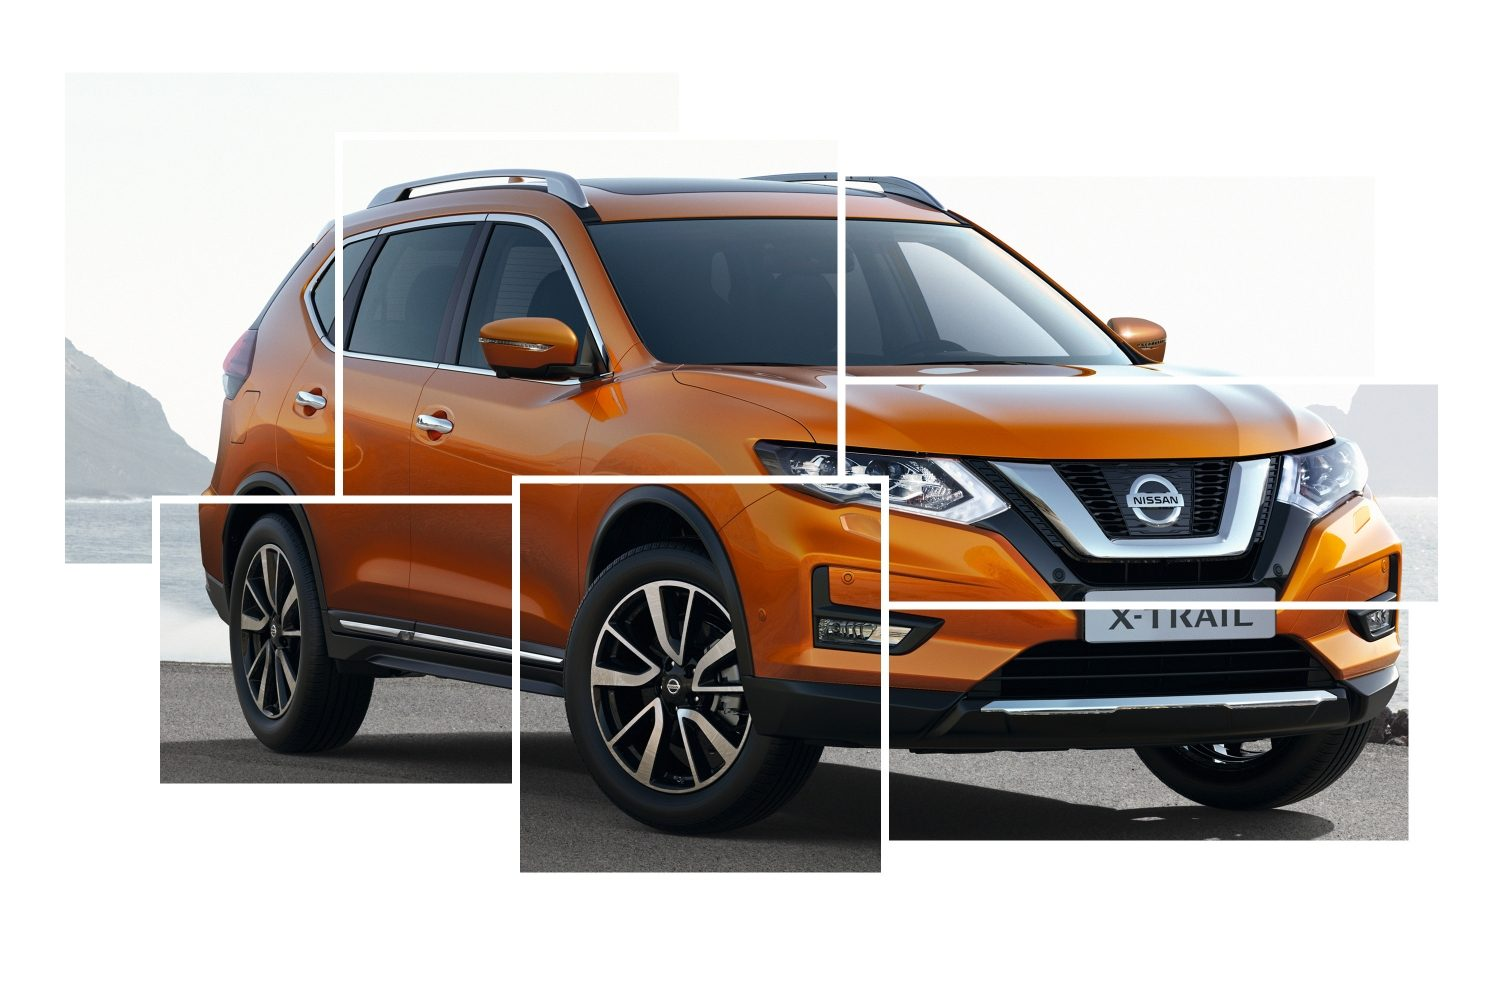 design nouveau nissan x trail 4x4 crossover. Black Bedroom Furniture Sets. Home Design Ideas